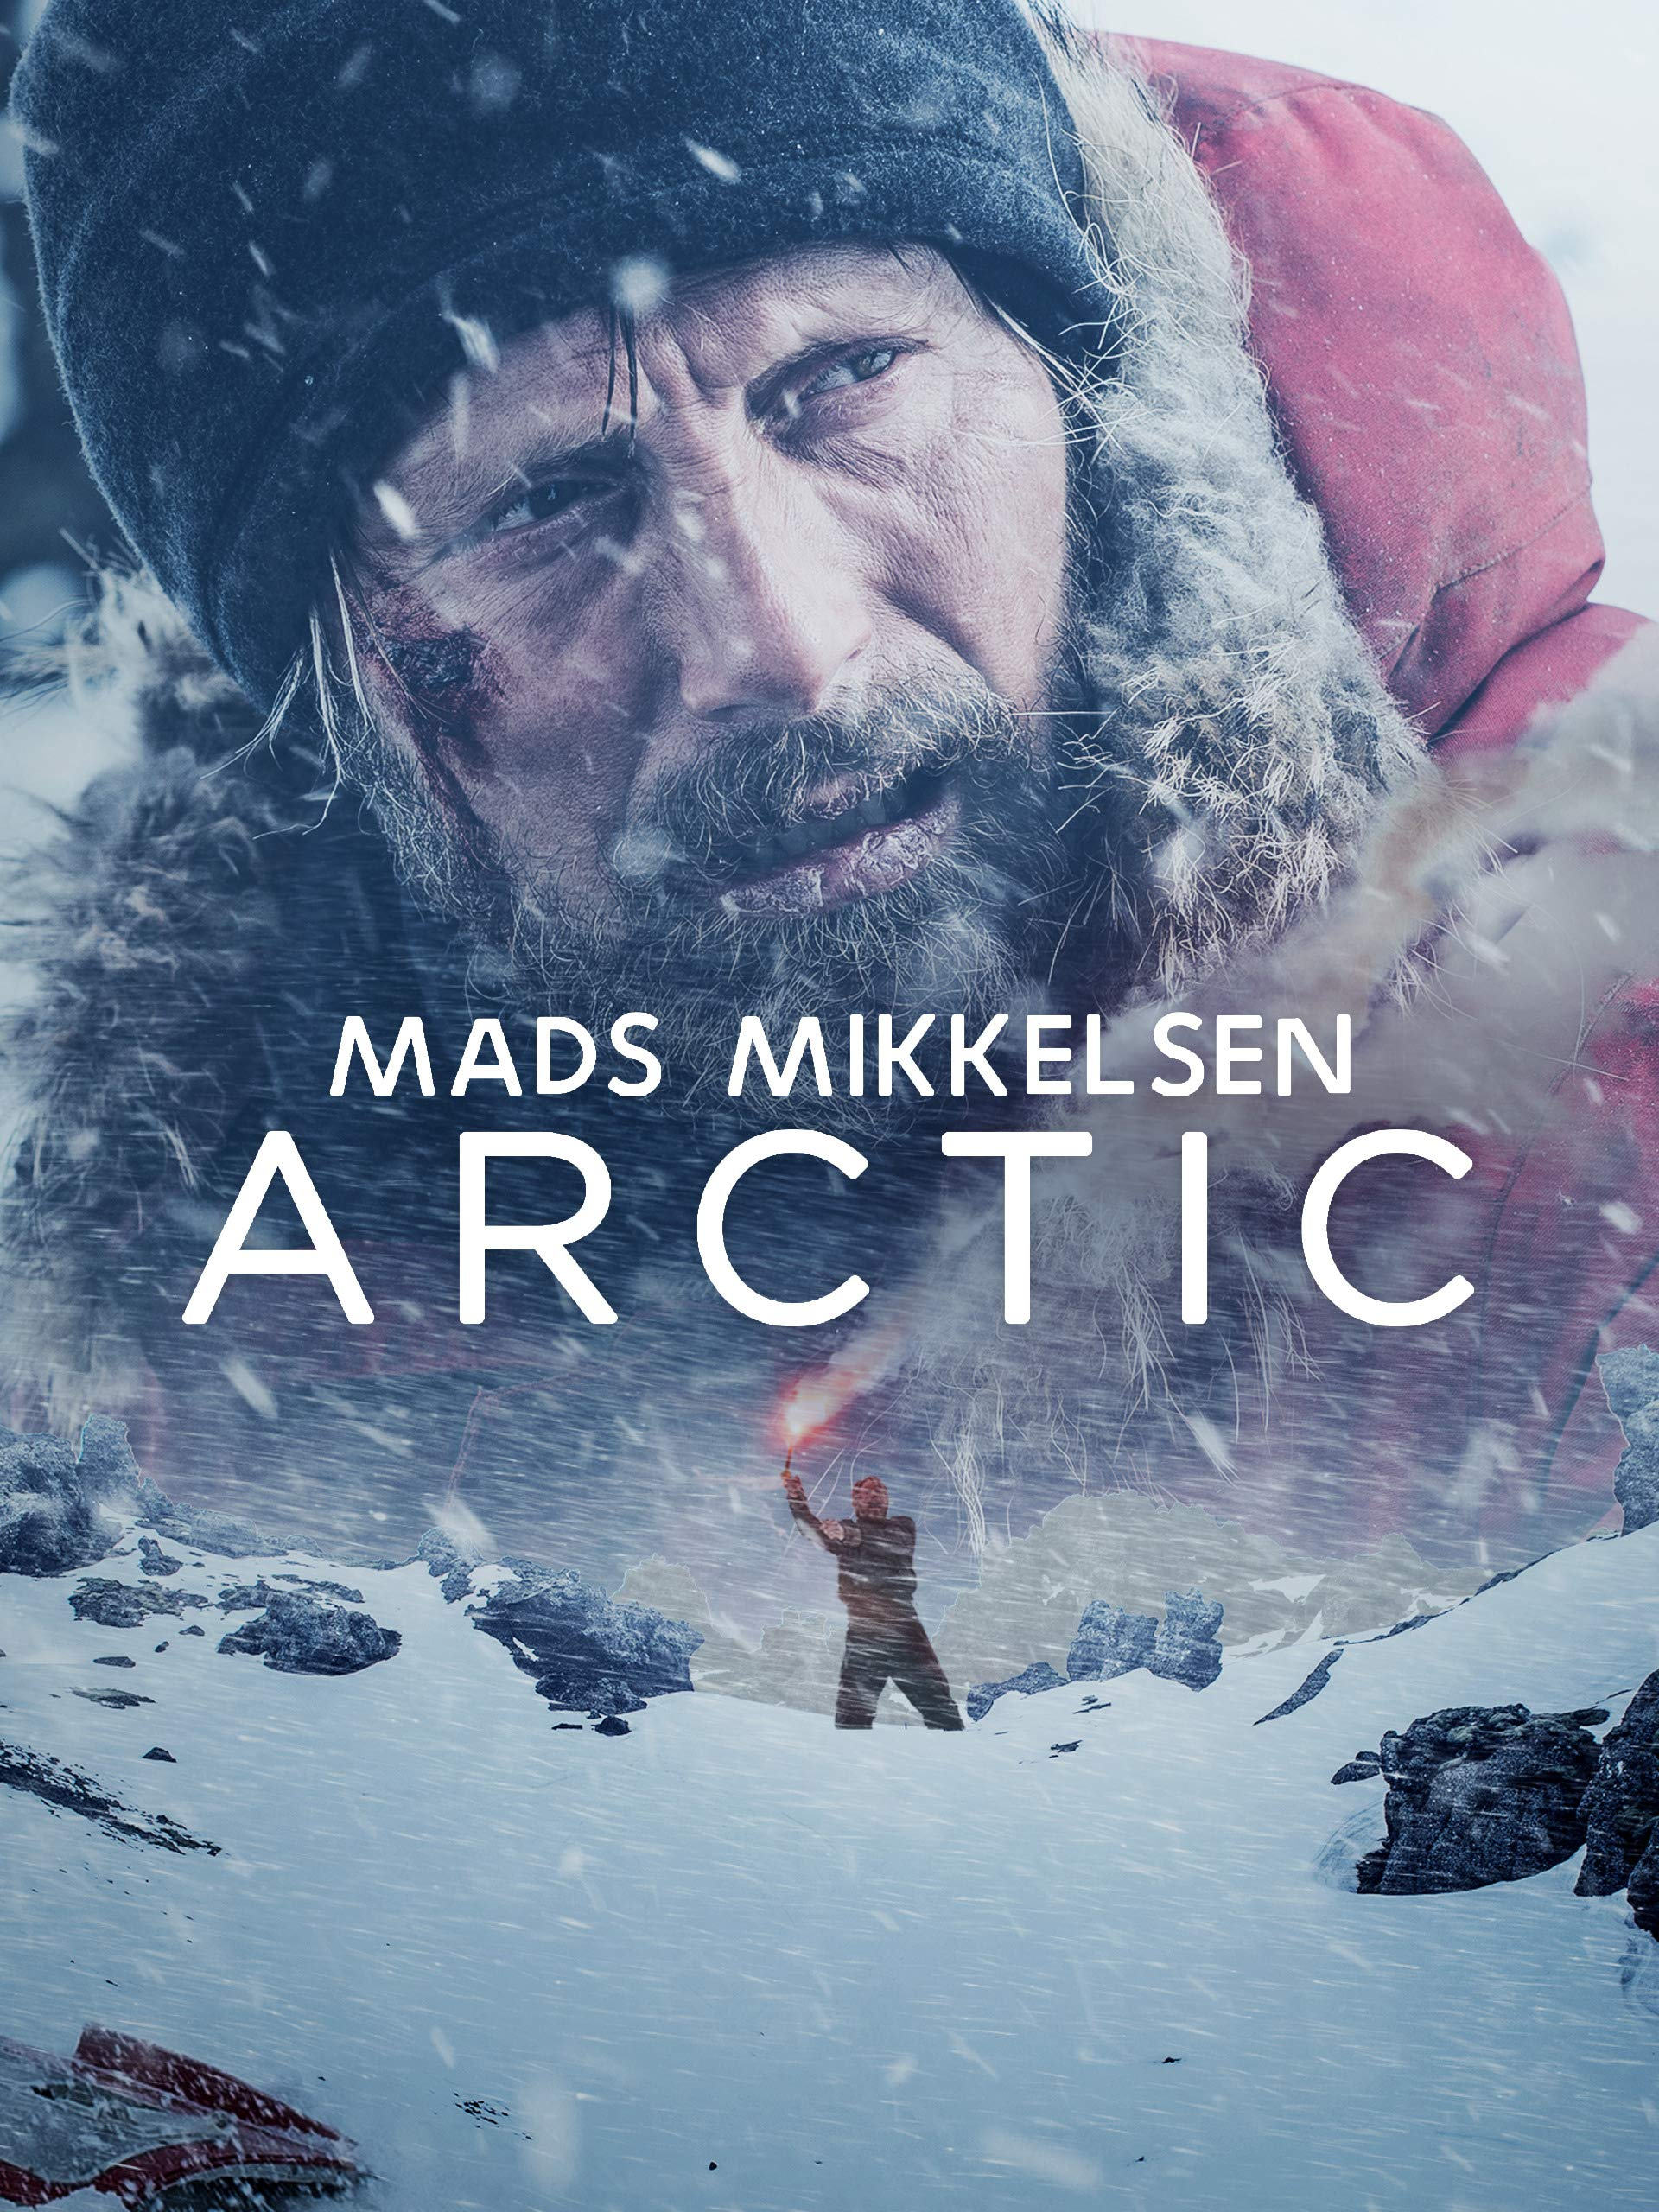 Arctic (2018) - Directed by: Joe PennaStarring: Mads Mikkelsen, Maria Thelma SmáradóttirRated: PG-13Running Time: 1h 38mTMM Score: 4.5 StarsSTRENGTHS: Cinematography, Setting, Mads MikkelsenWEAKNESSES: Some implausibility